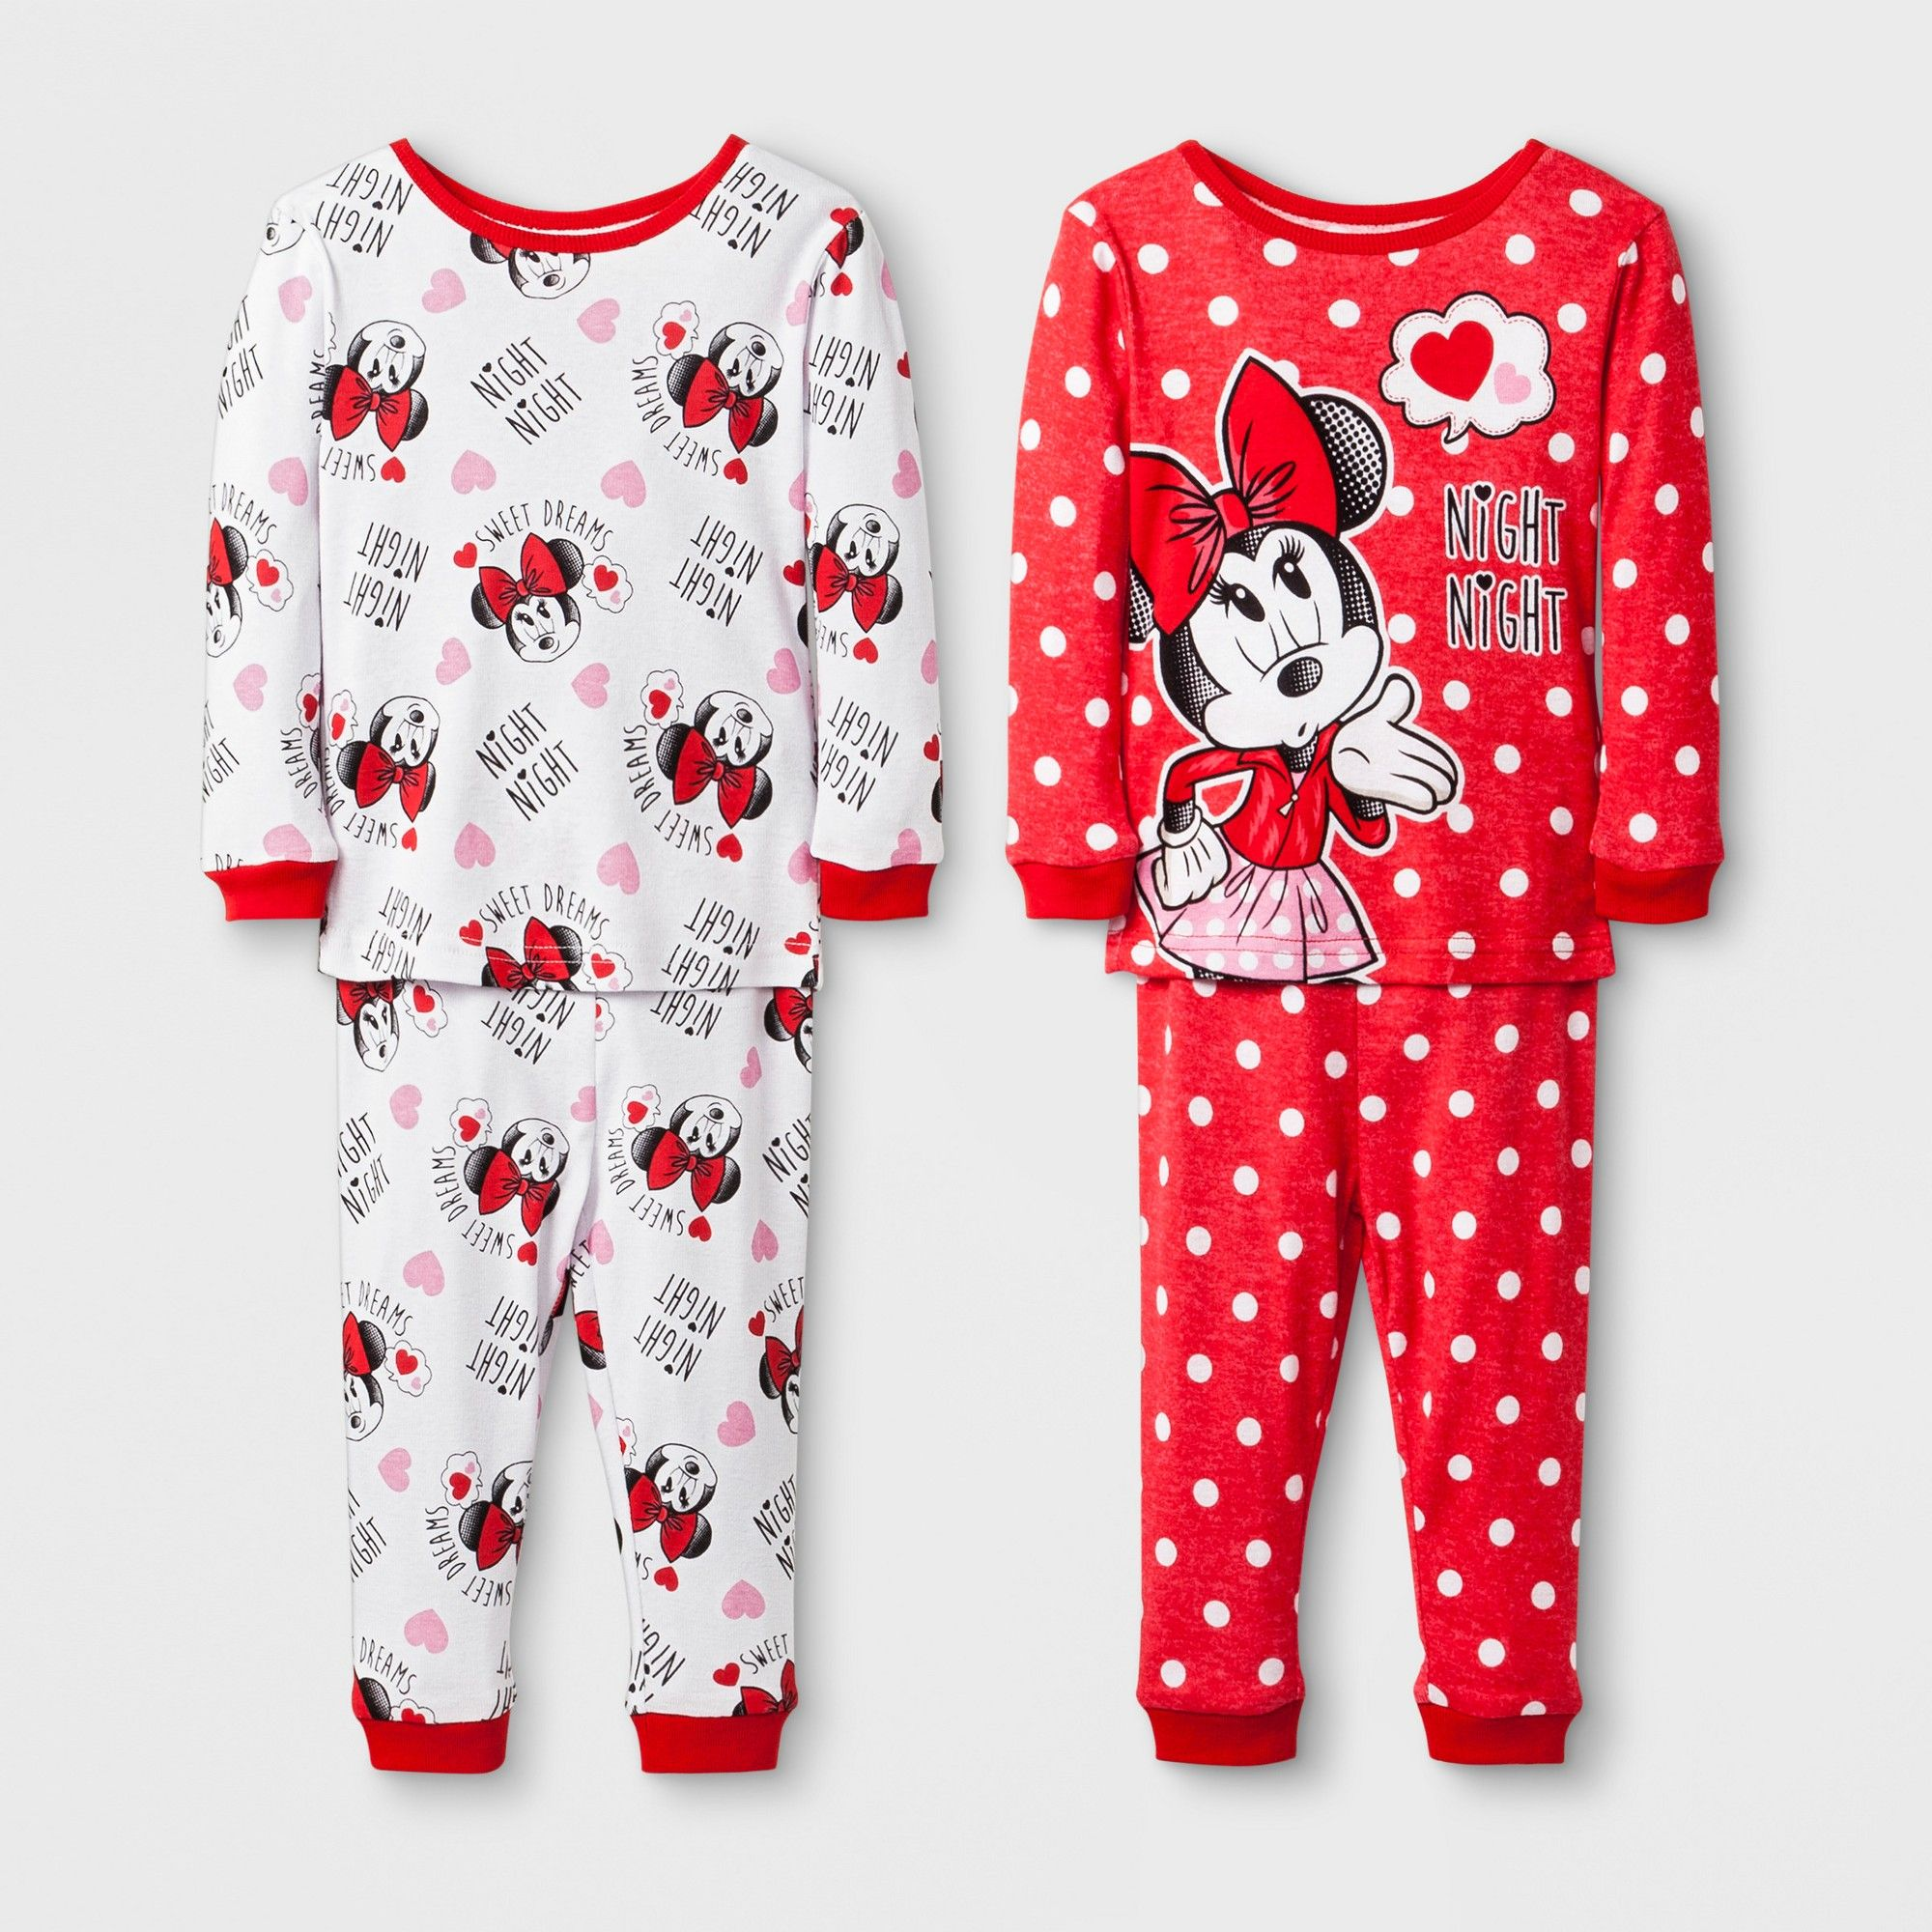 d4b7549f7e Baby Girls  Disney Mickey Mouse   Friends Minnie Mouse 4pc Pajama Set - Red  18M